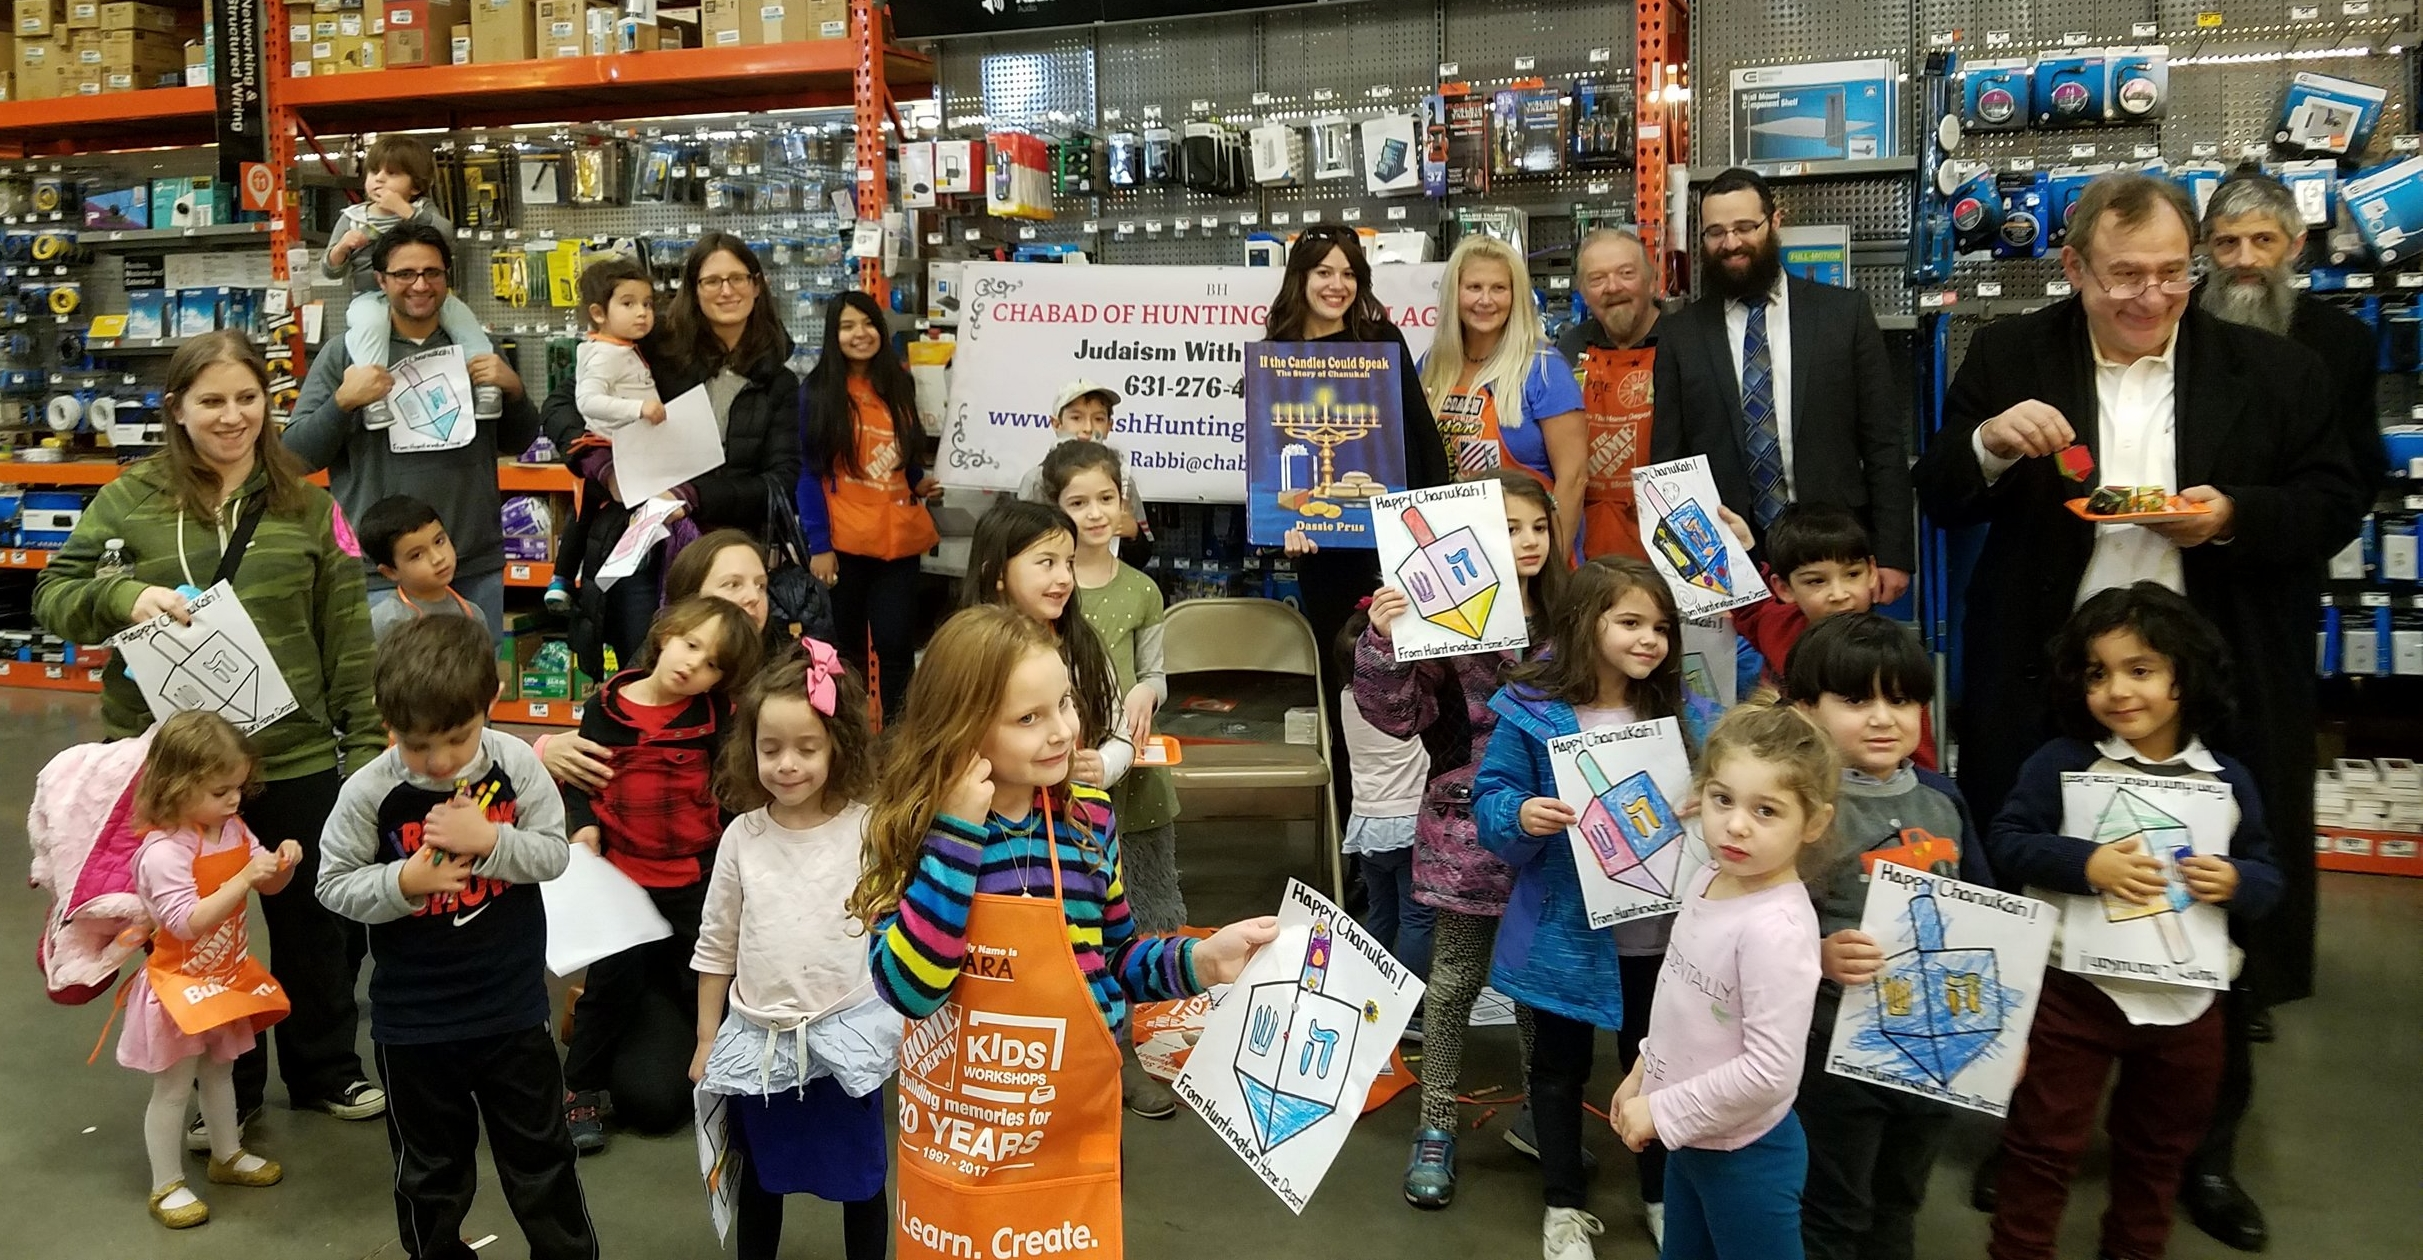 """The crowd at Chabad of Huntington Village's """"Make Your Own Chanukah Dreidel"""" workshop on Sunday.  Photo Courtesy of Chabad of Huntington Village"""